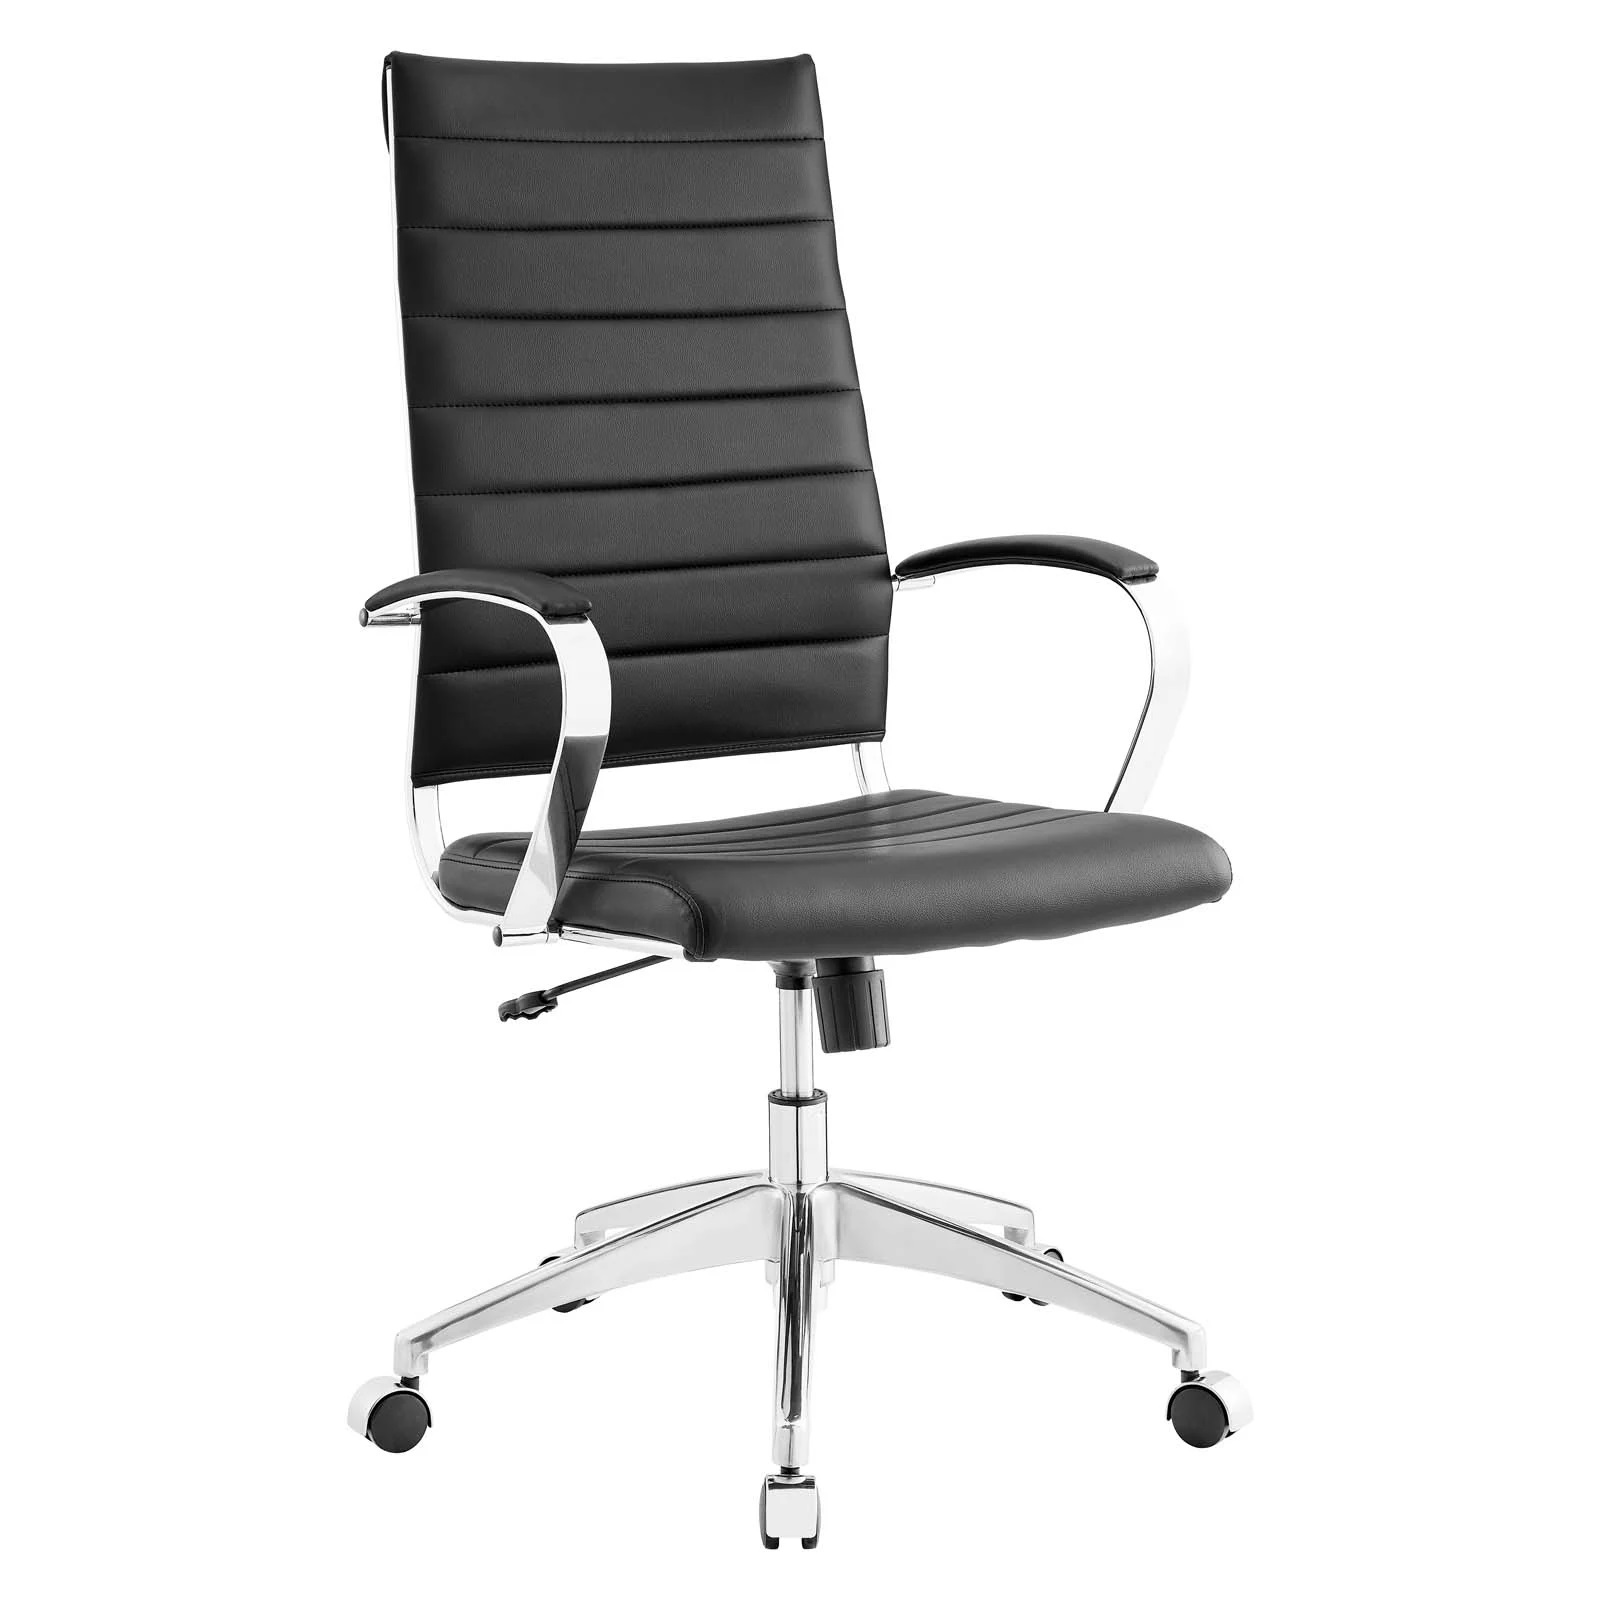 Highback Office Chair in Black